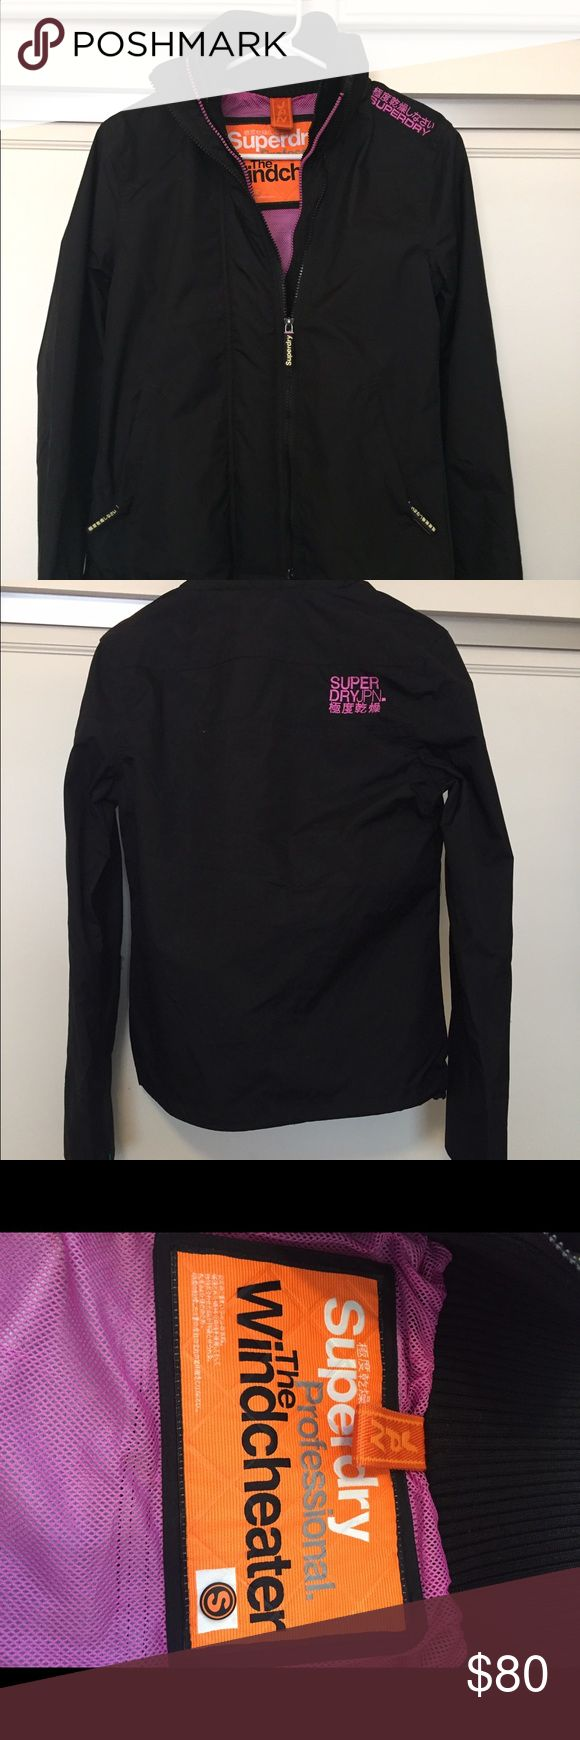 Superdry windcheater jacket NWOT Size small, black, New without tags Superdry Jackets & Coats